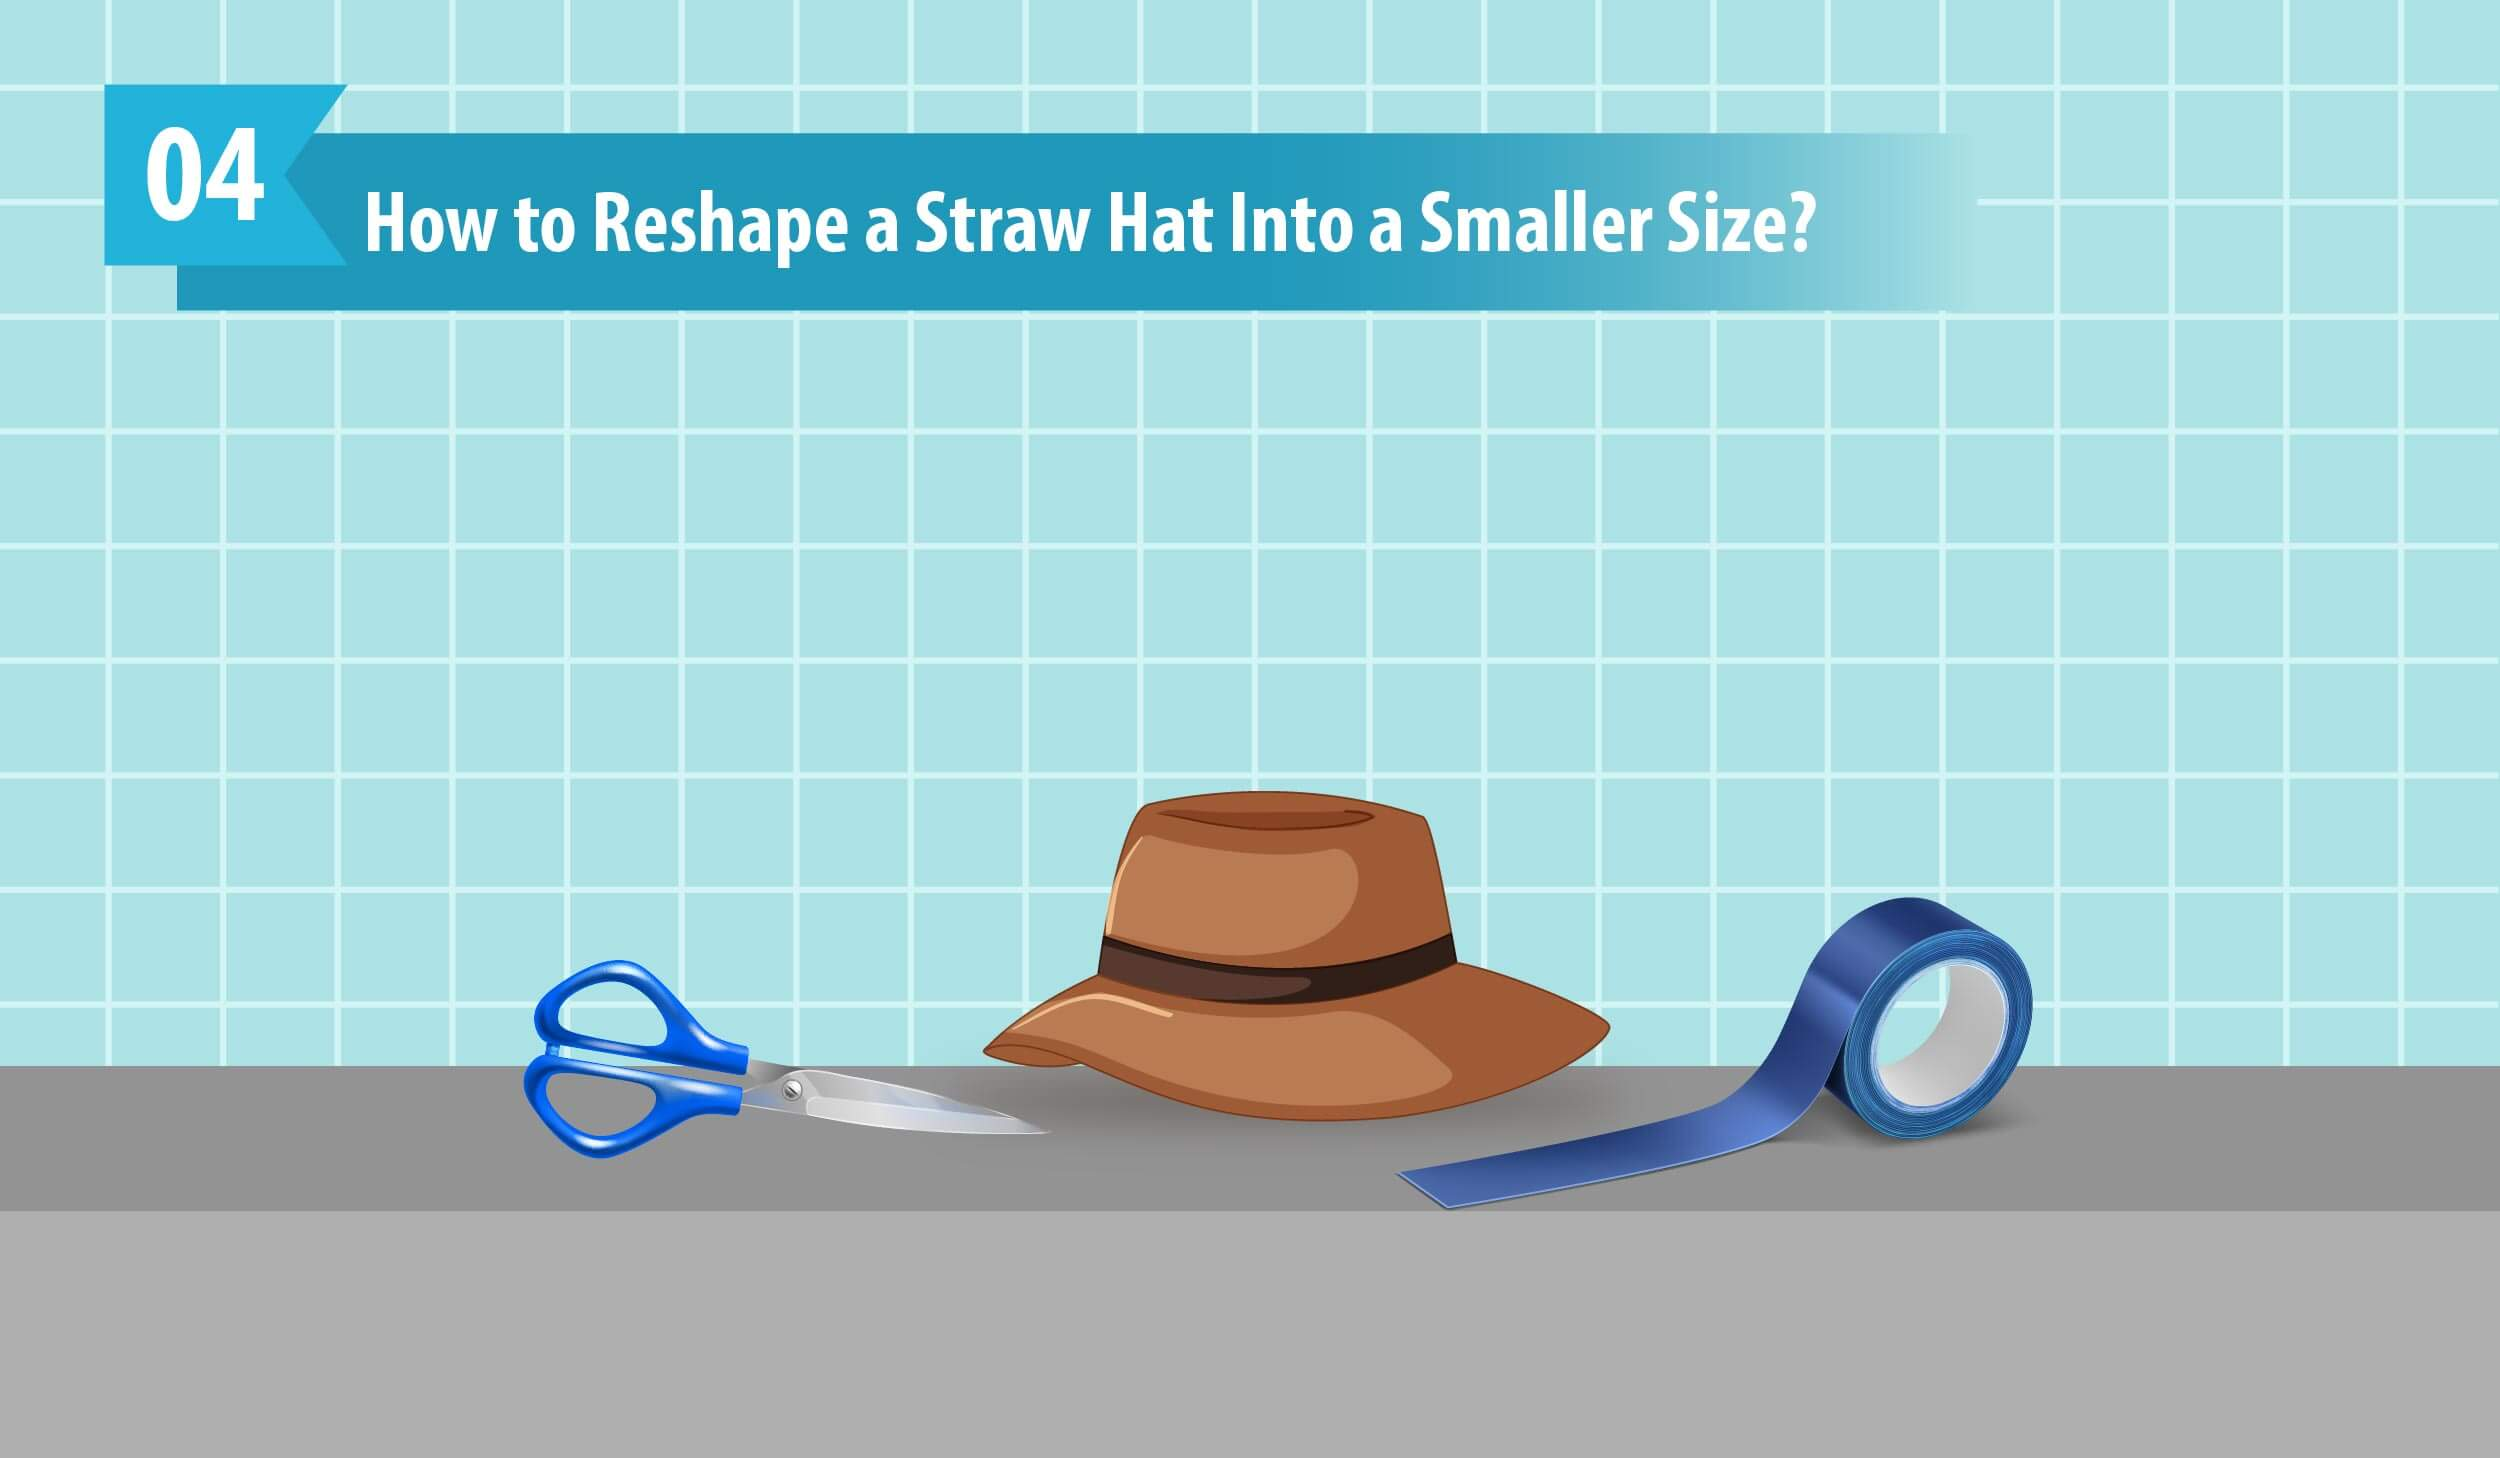 How to Reshape a Straw Hat Into a Smaller Size